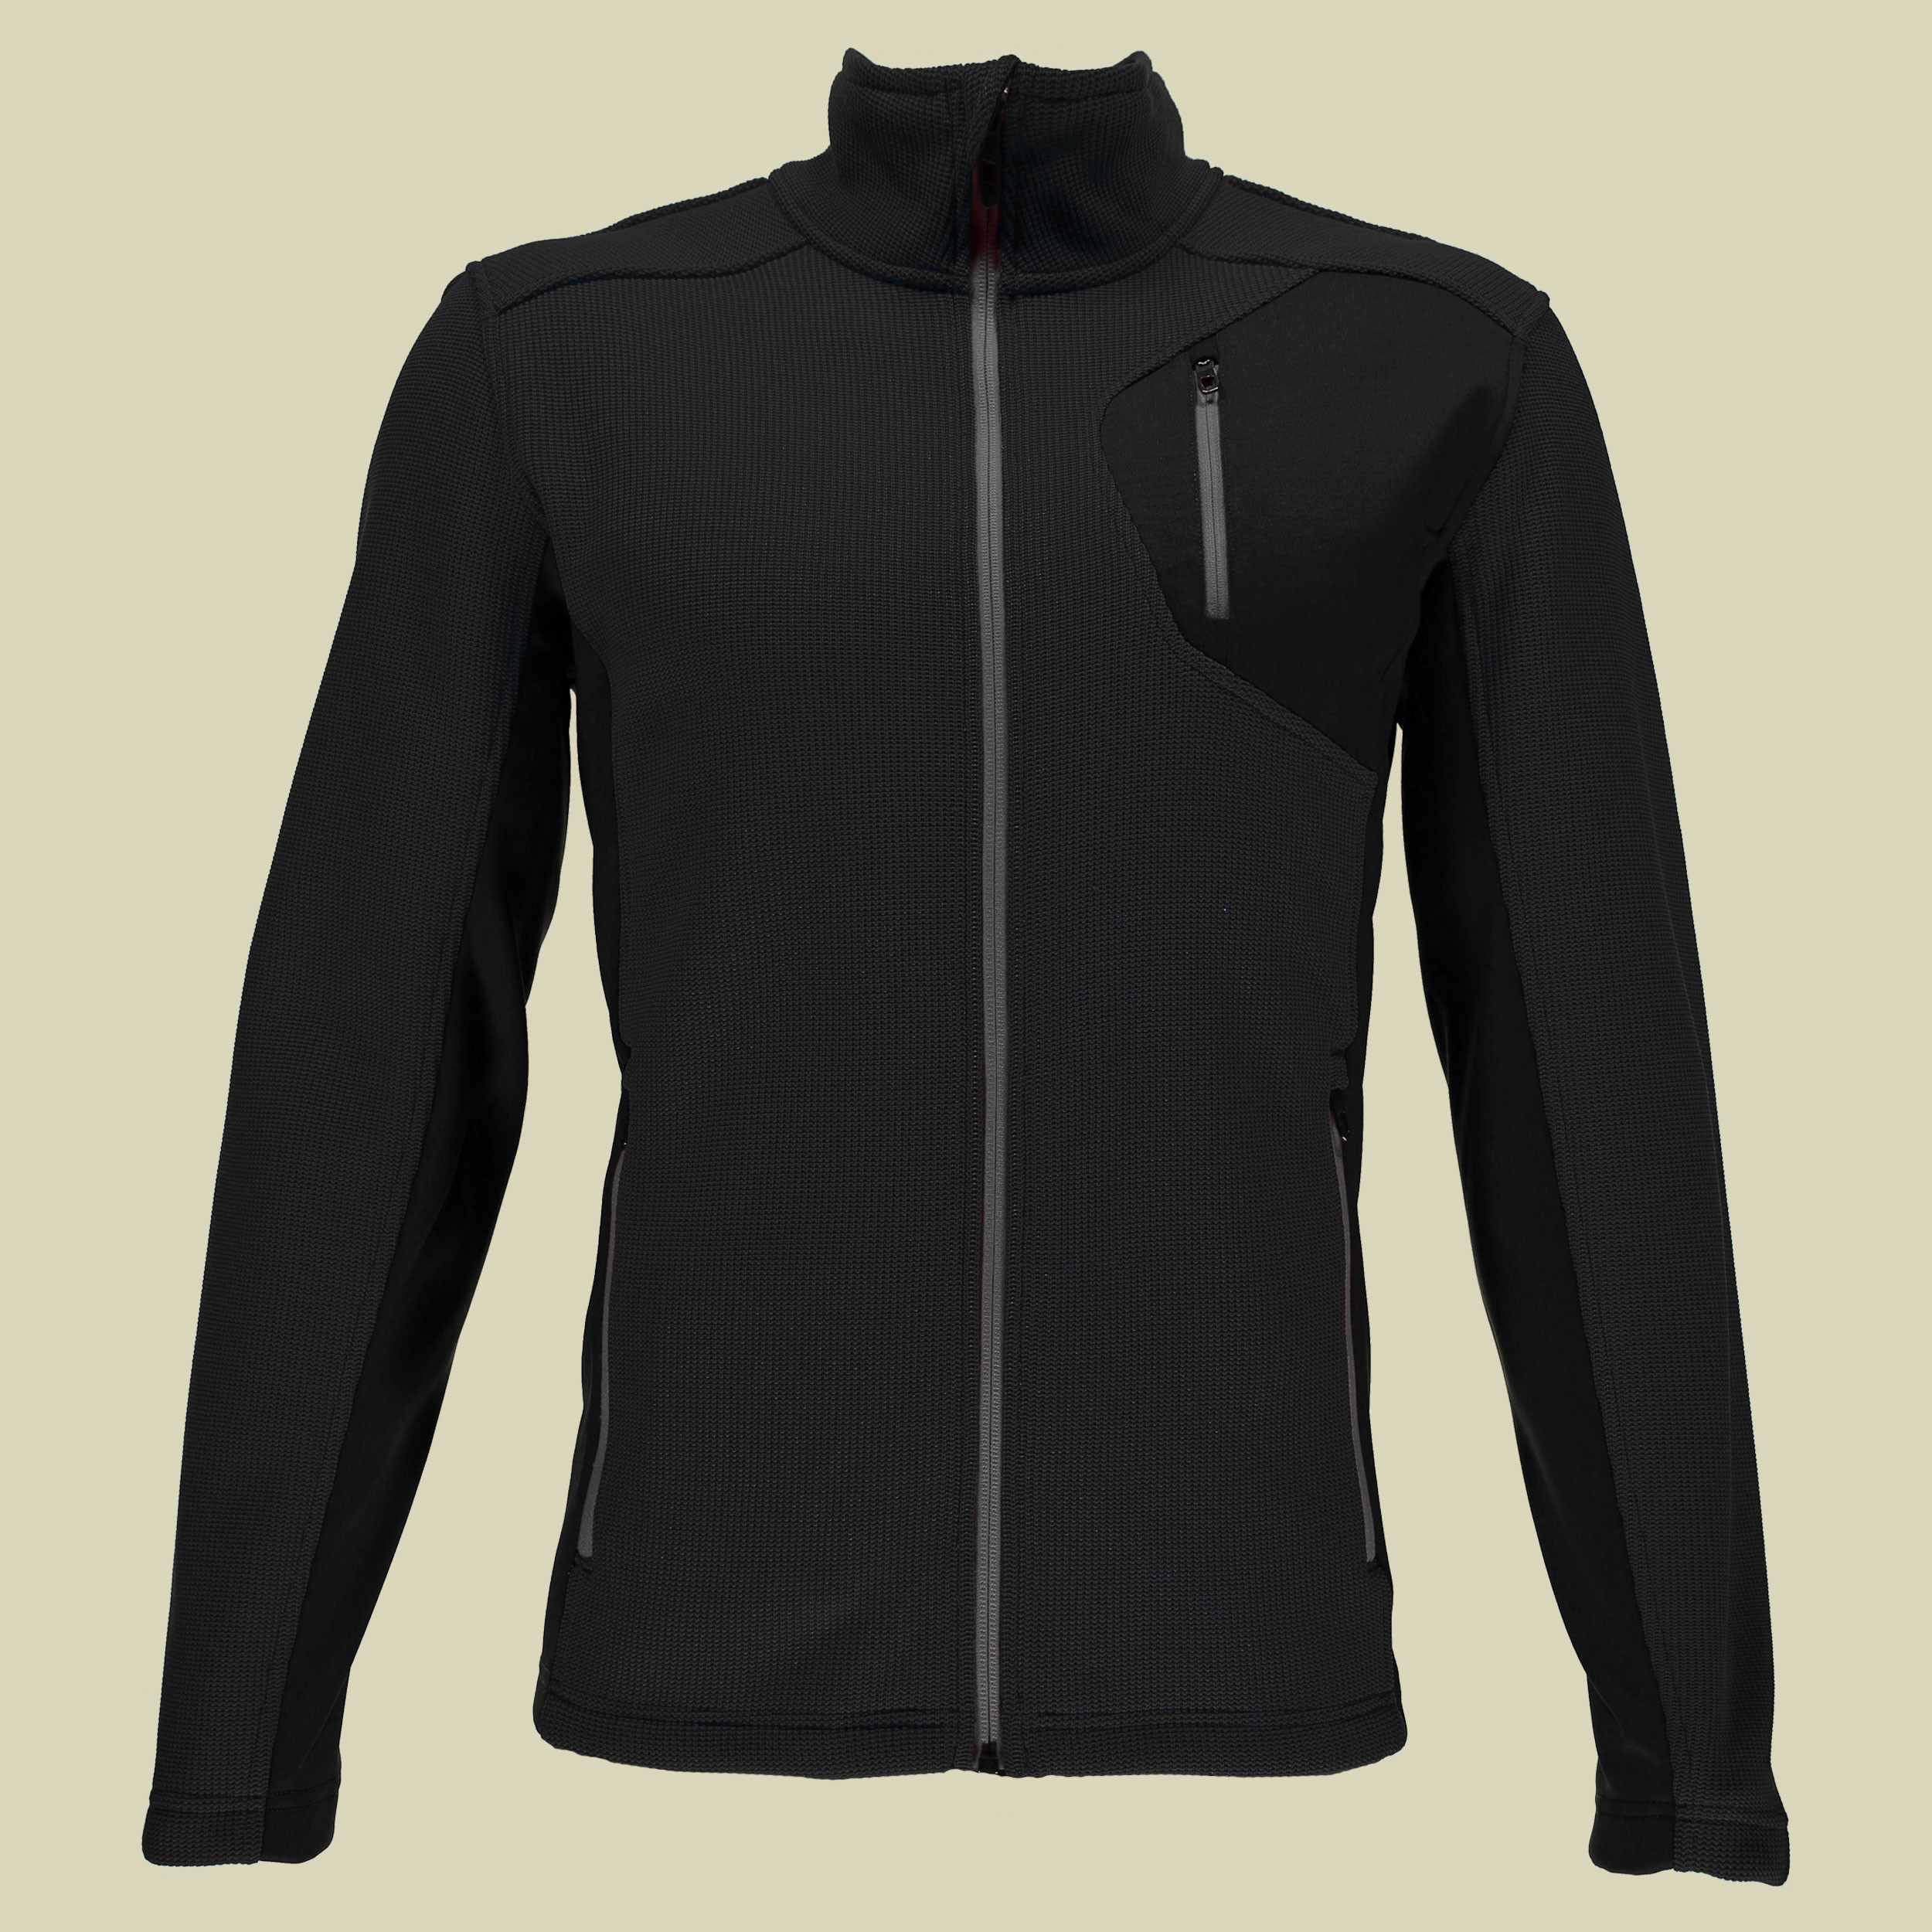 Bandit Full Zip LT WT Stryke Fleece Jacket Men